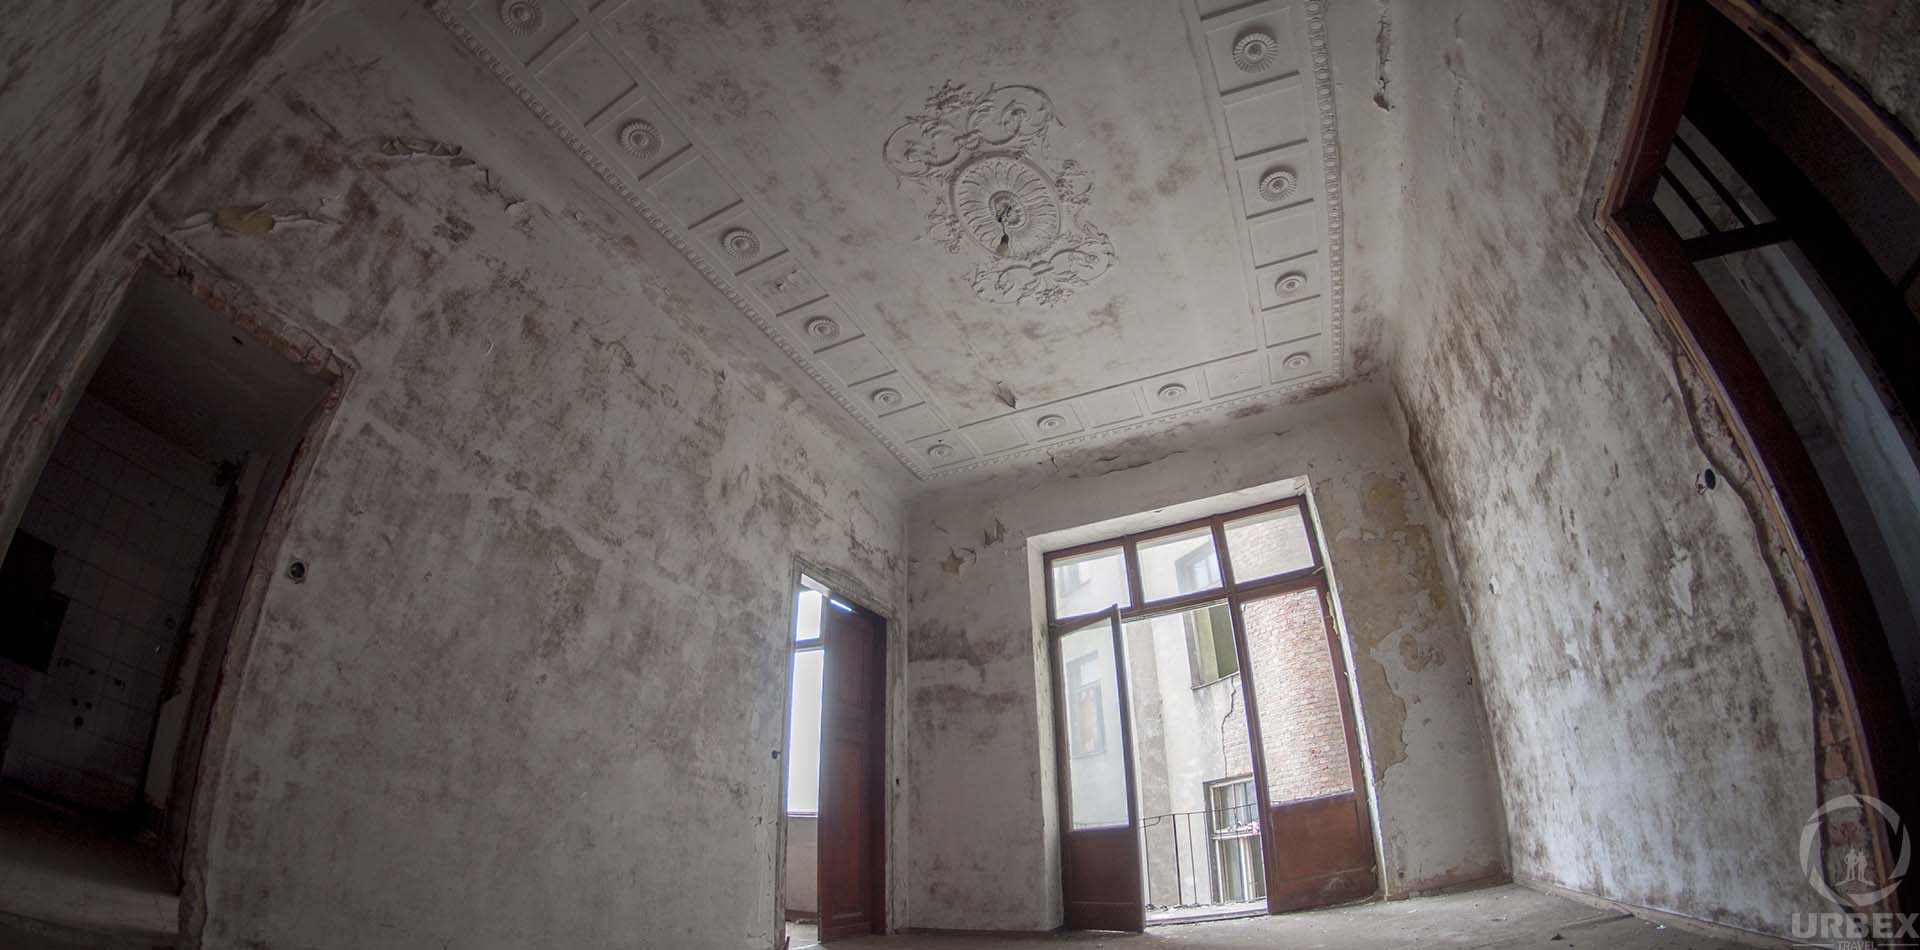 Urbex in Warsaw Abandoned Tenemrnt House